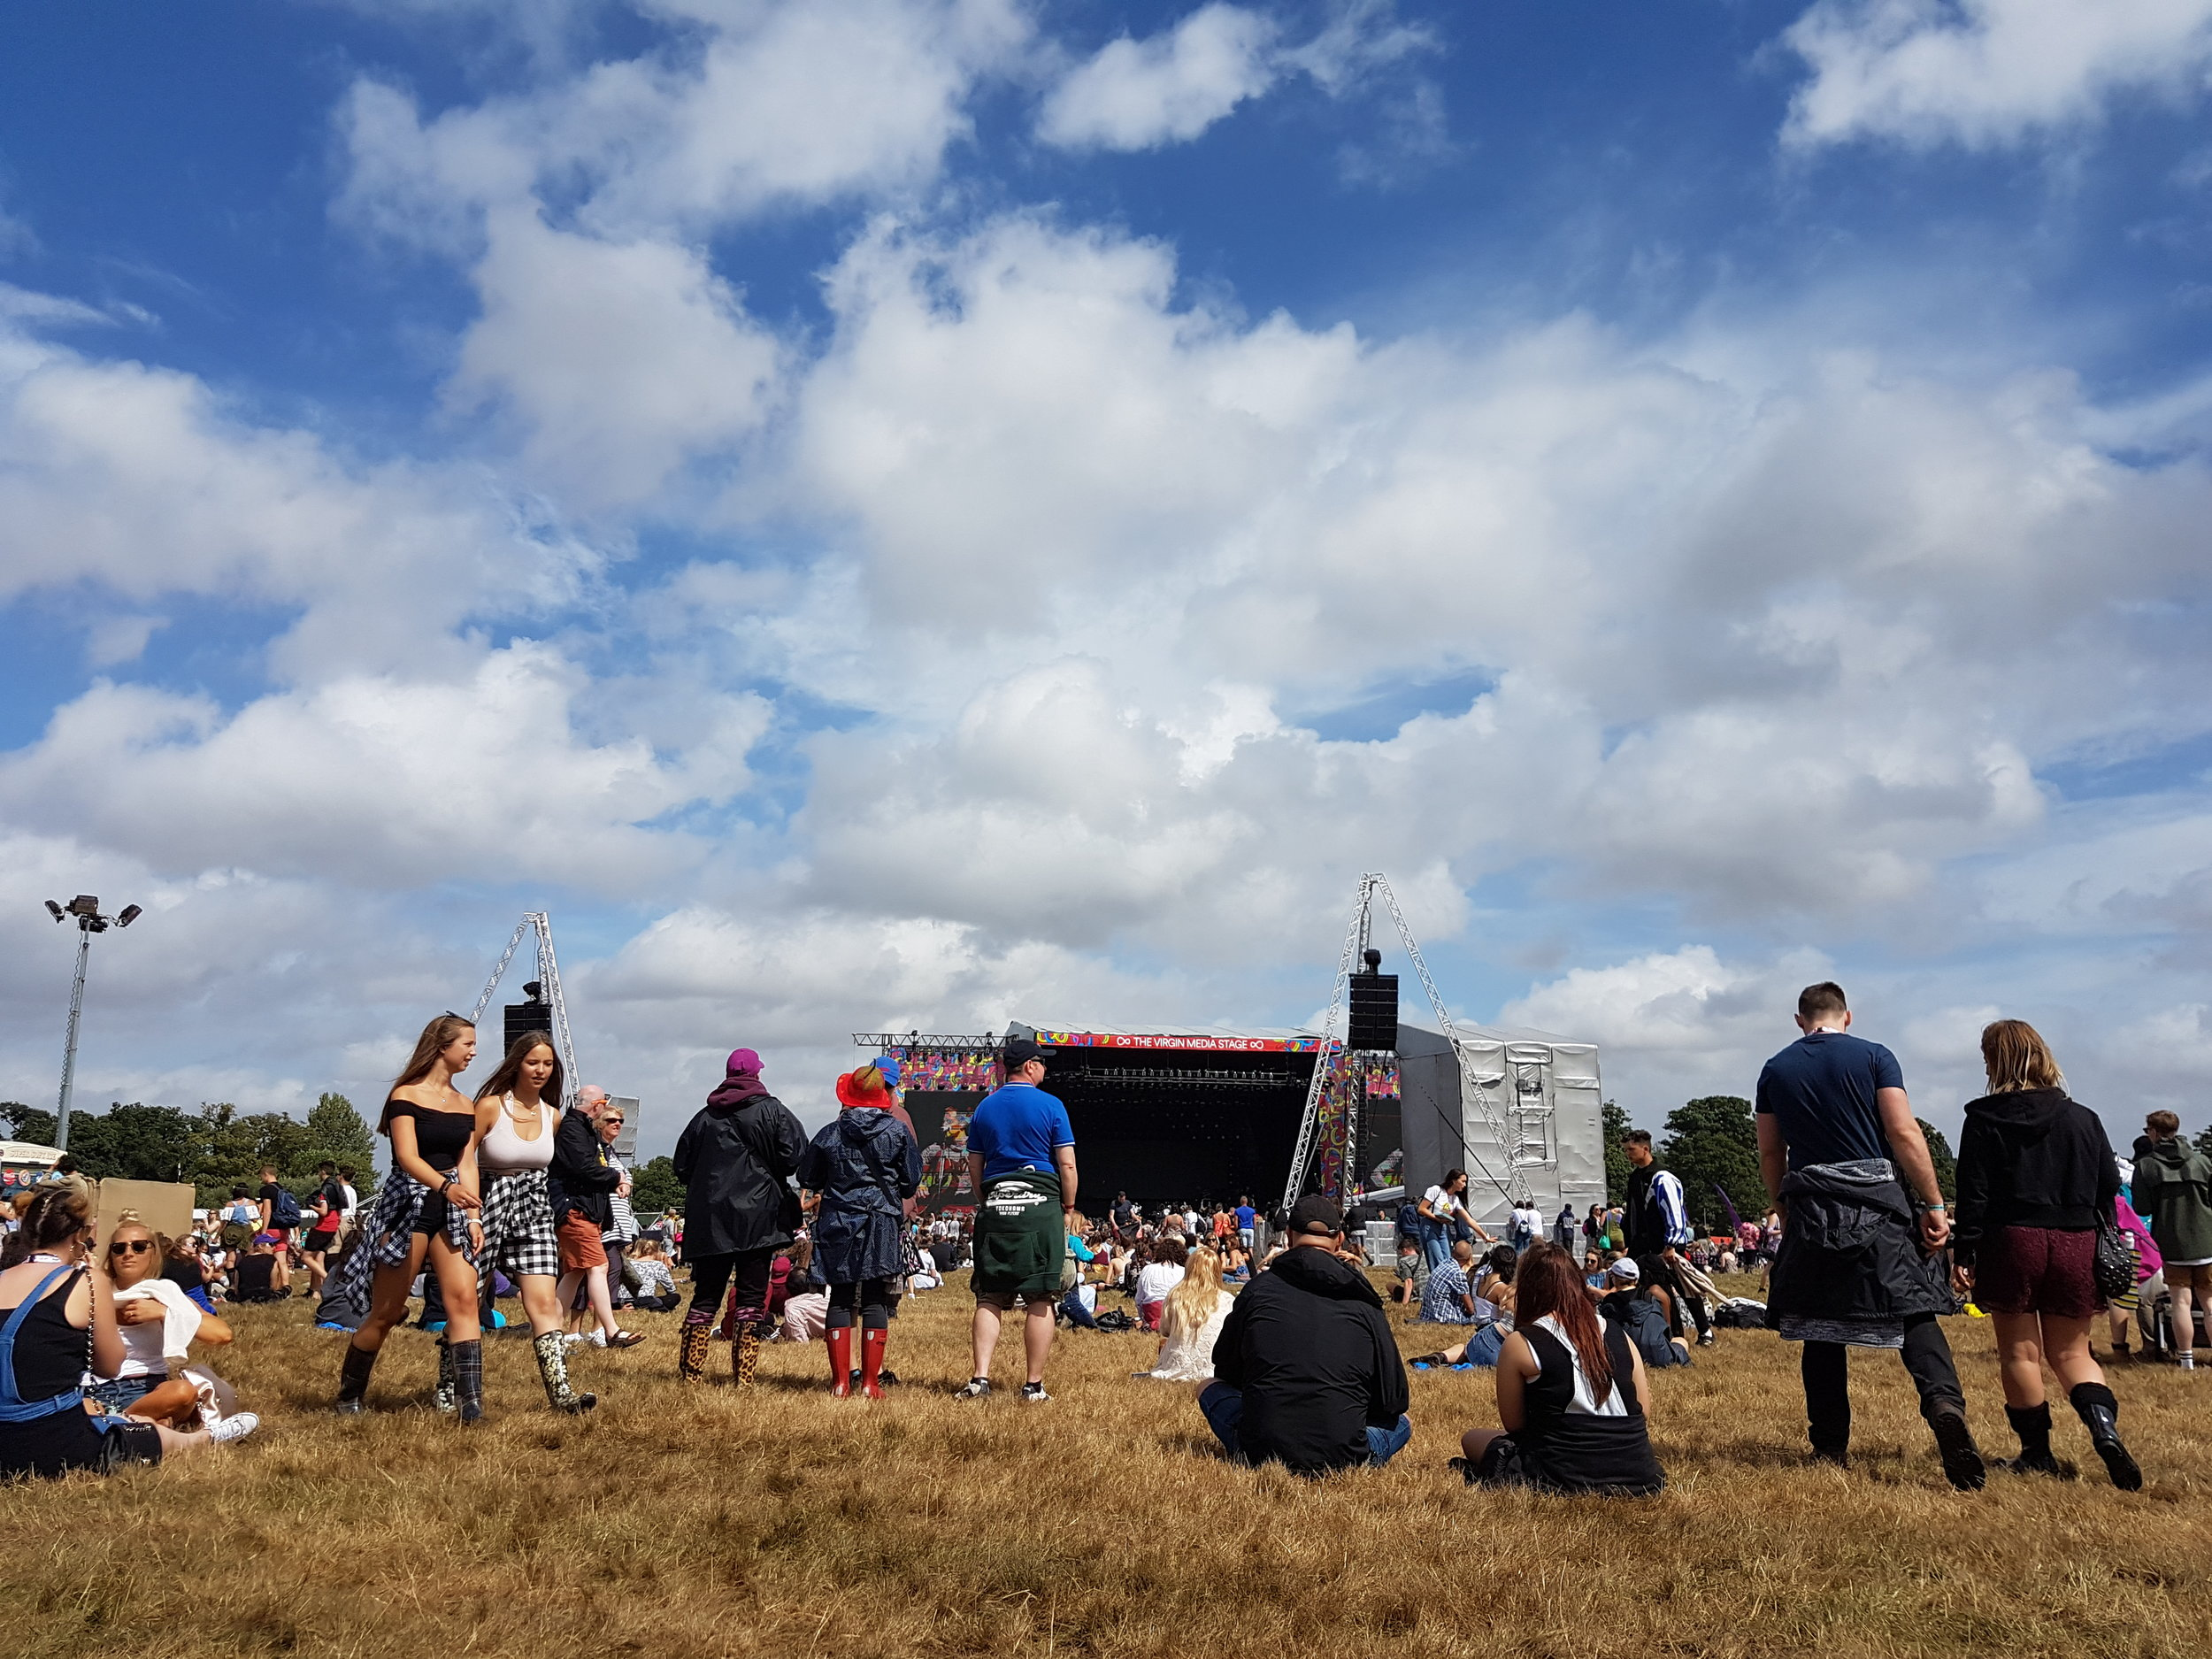 A shot of the Main Stage Area